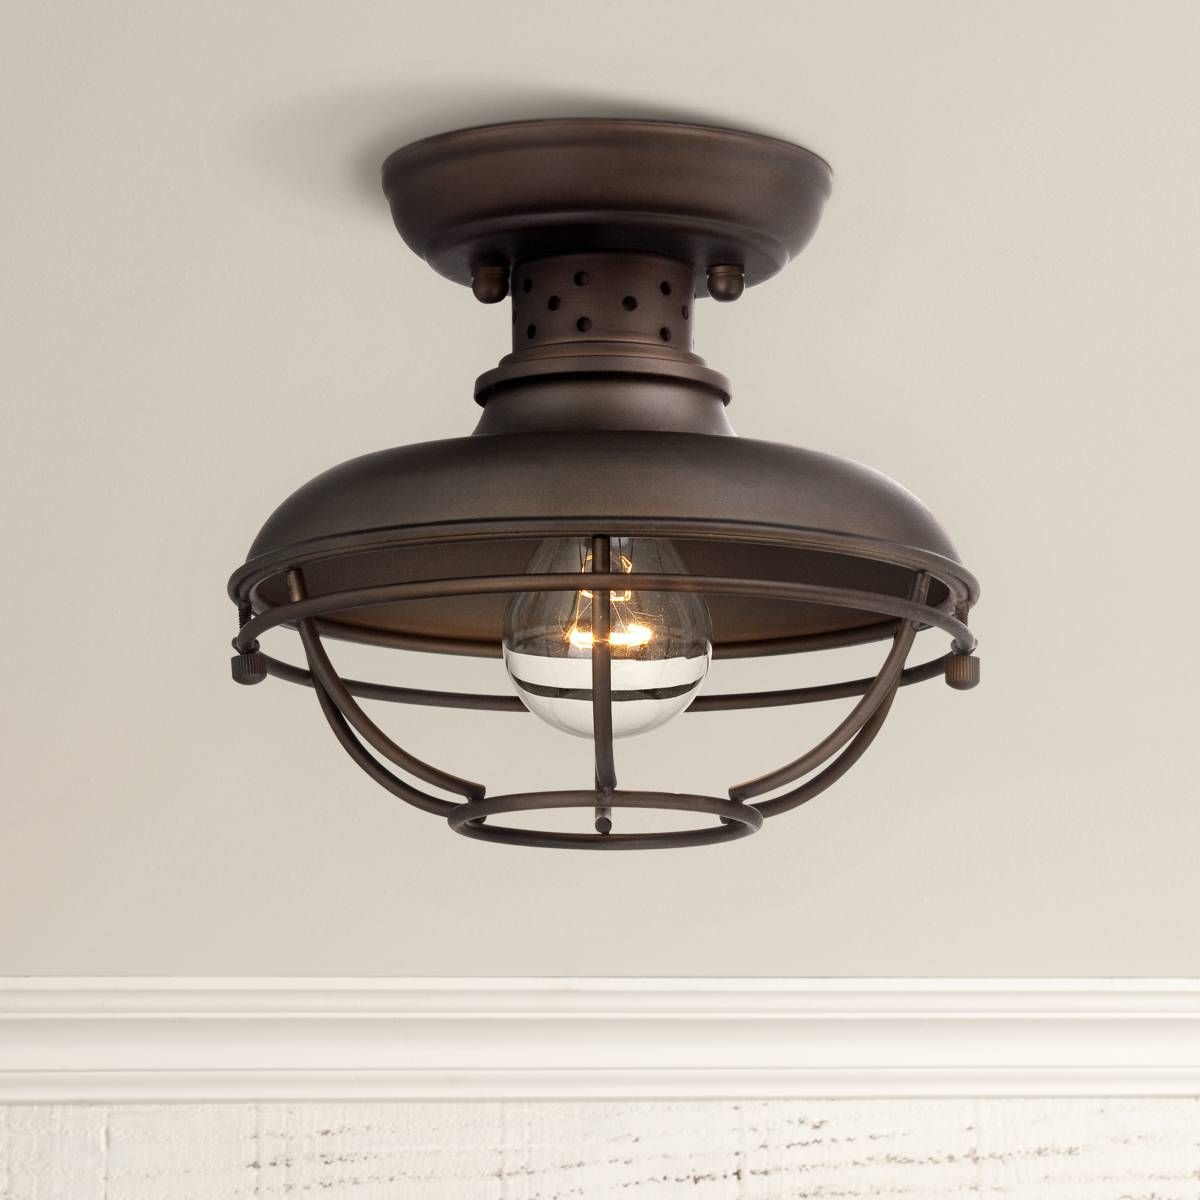 83 Reference Of Lamps Plus Flush Mount In 2020 Outdoor Ceiling Lights Ceiling Lights Porch Lighting